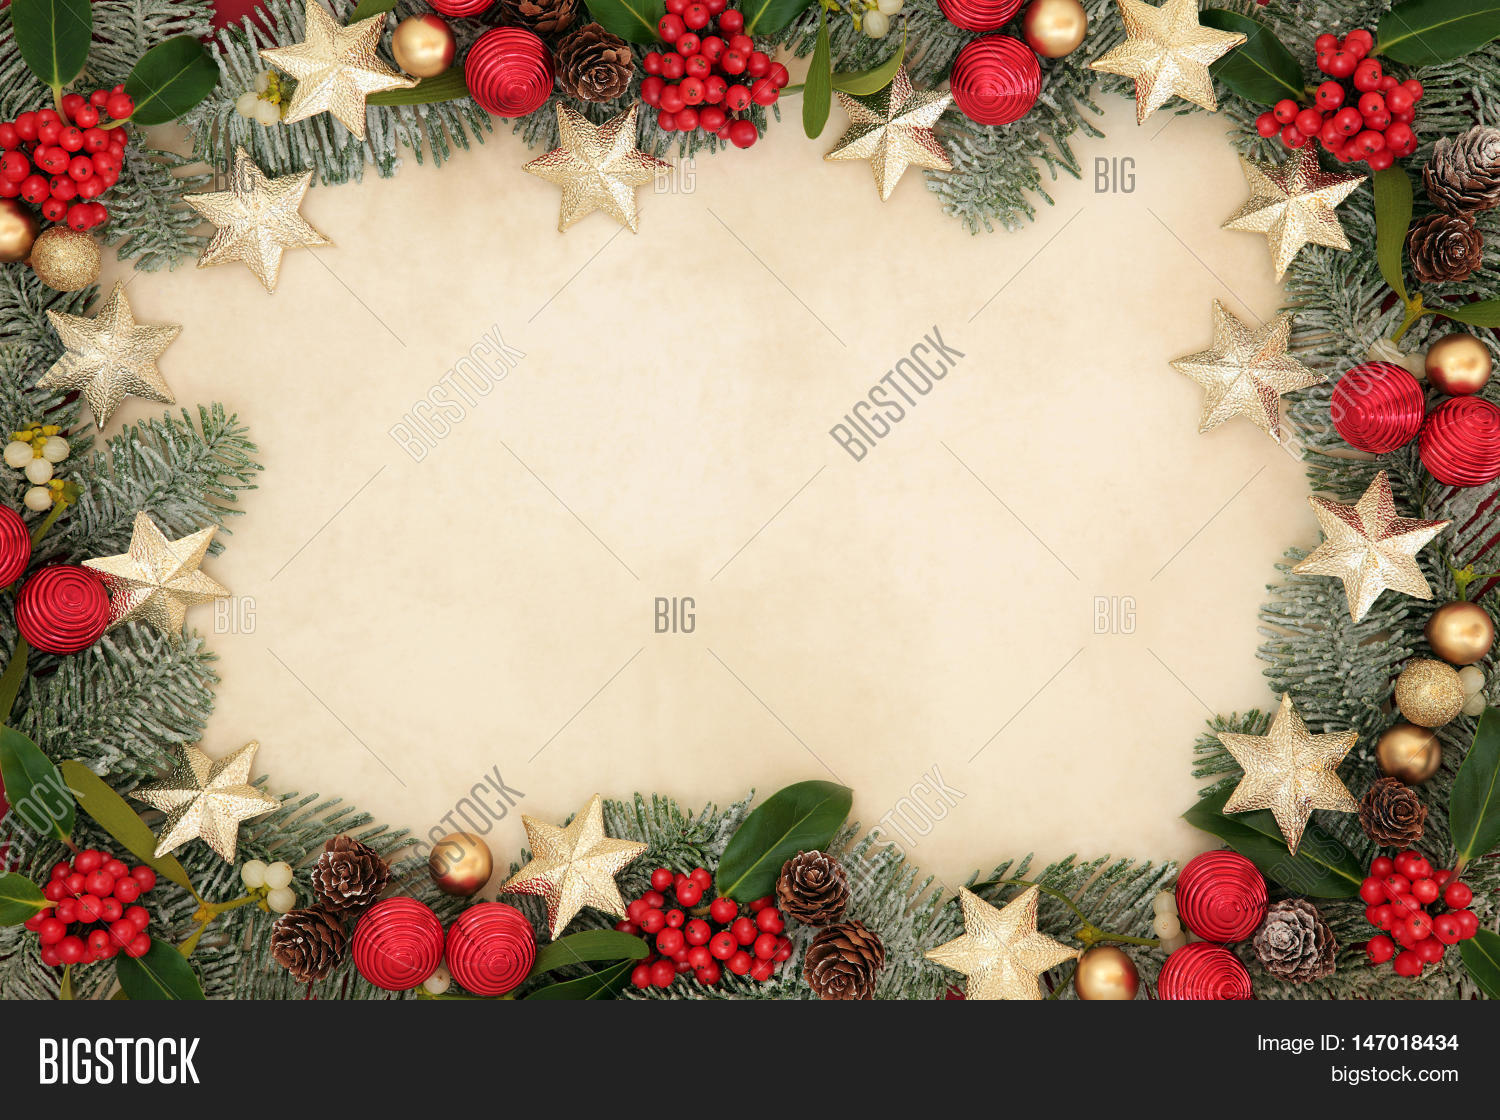 Free Illustration Background Christmas Red Gold: Christmas Background Image & Photo (Free Trial)